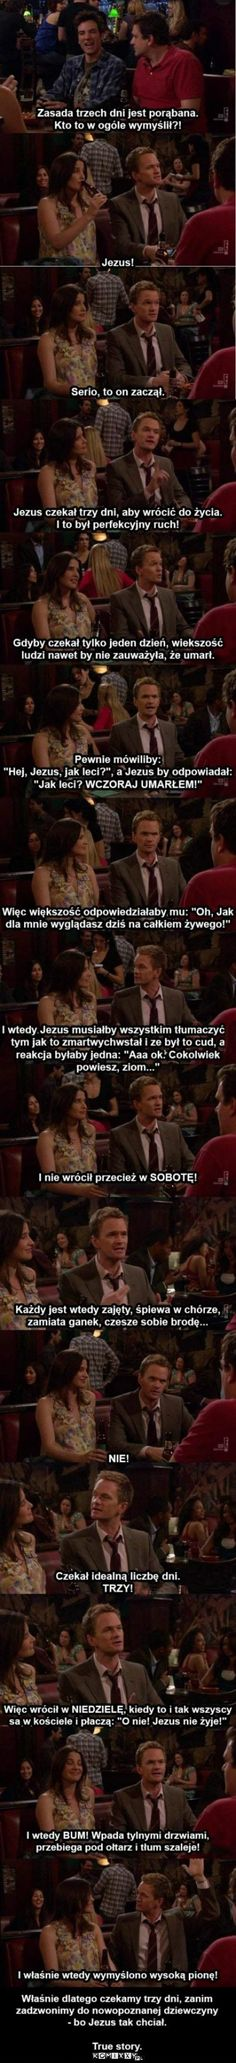 Barney Stinson on the 3 day rule. This is why HIMYM is one of the greatest shows of all time. How I Met Your Mother, Funny Stories, True Stories, 3 Day Rule, Haha Funny, Funny Stuff, Freaking Hilarious, Funny Things, Random Stuff